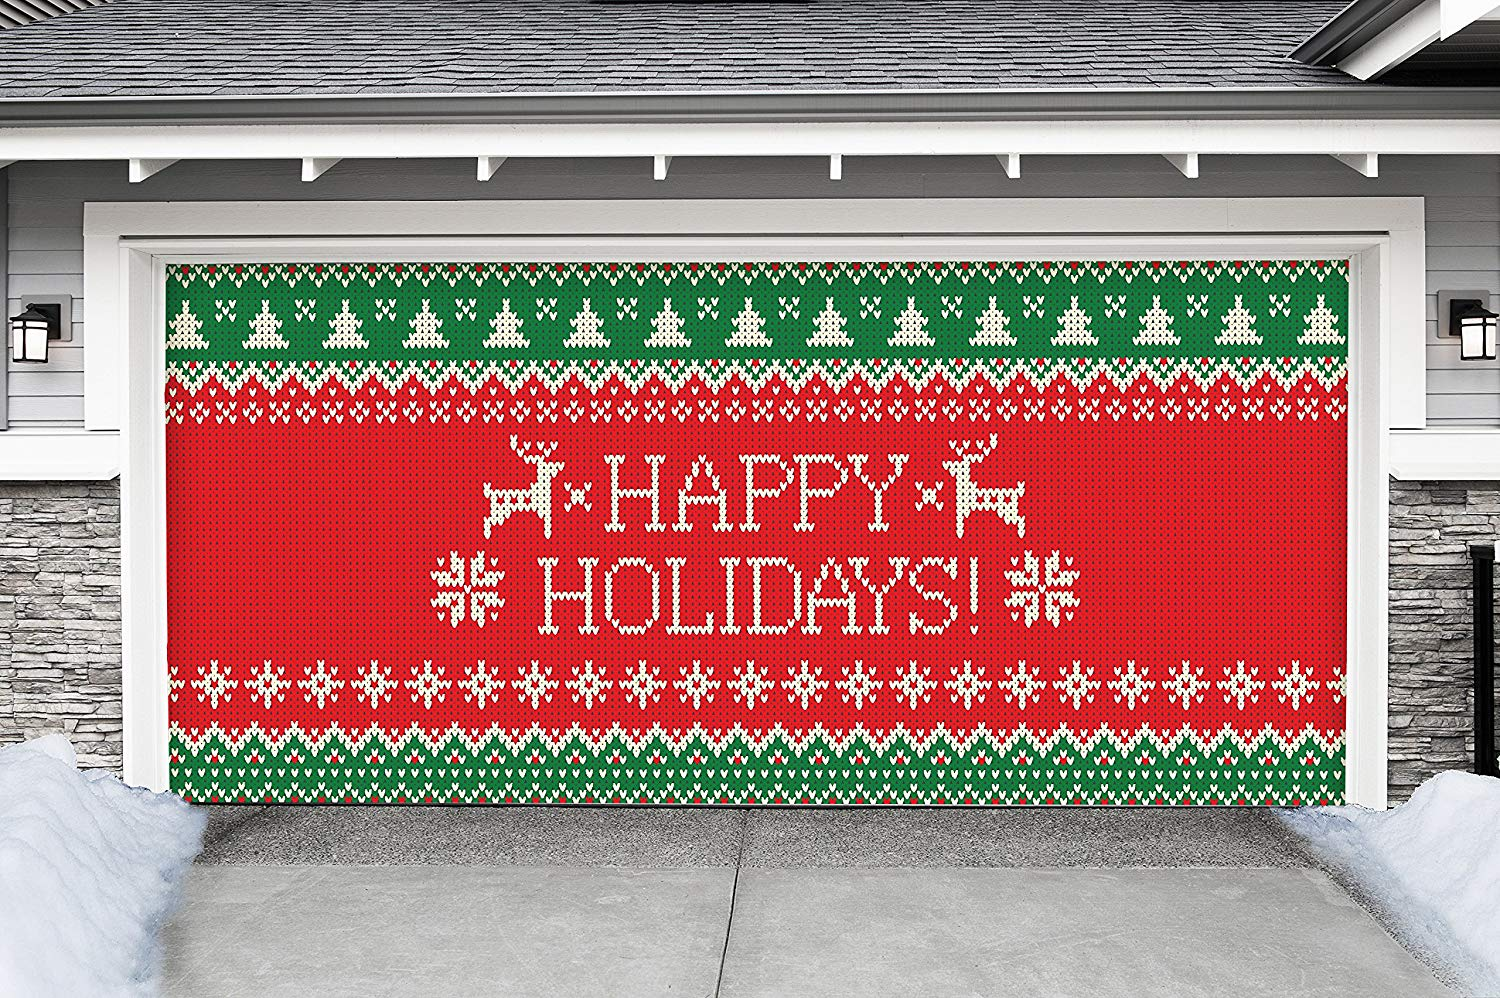 Victory Corps Outdoor Christmas Holiday Garage Door Banner Cover Mural Décoration - Ugly Christmas Sweater Happy Holidays - Outdoor Christmas Holiday Garage Door Banner Décor Sign 7'x16'